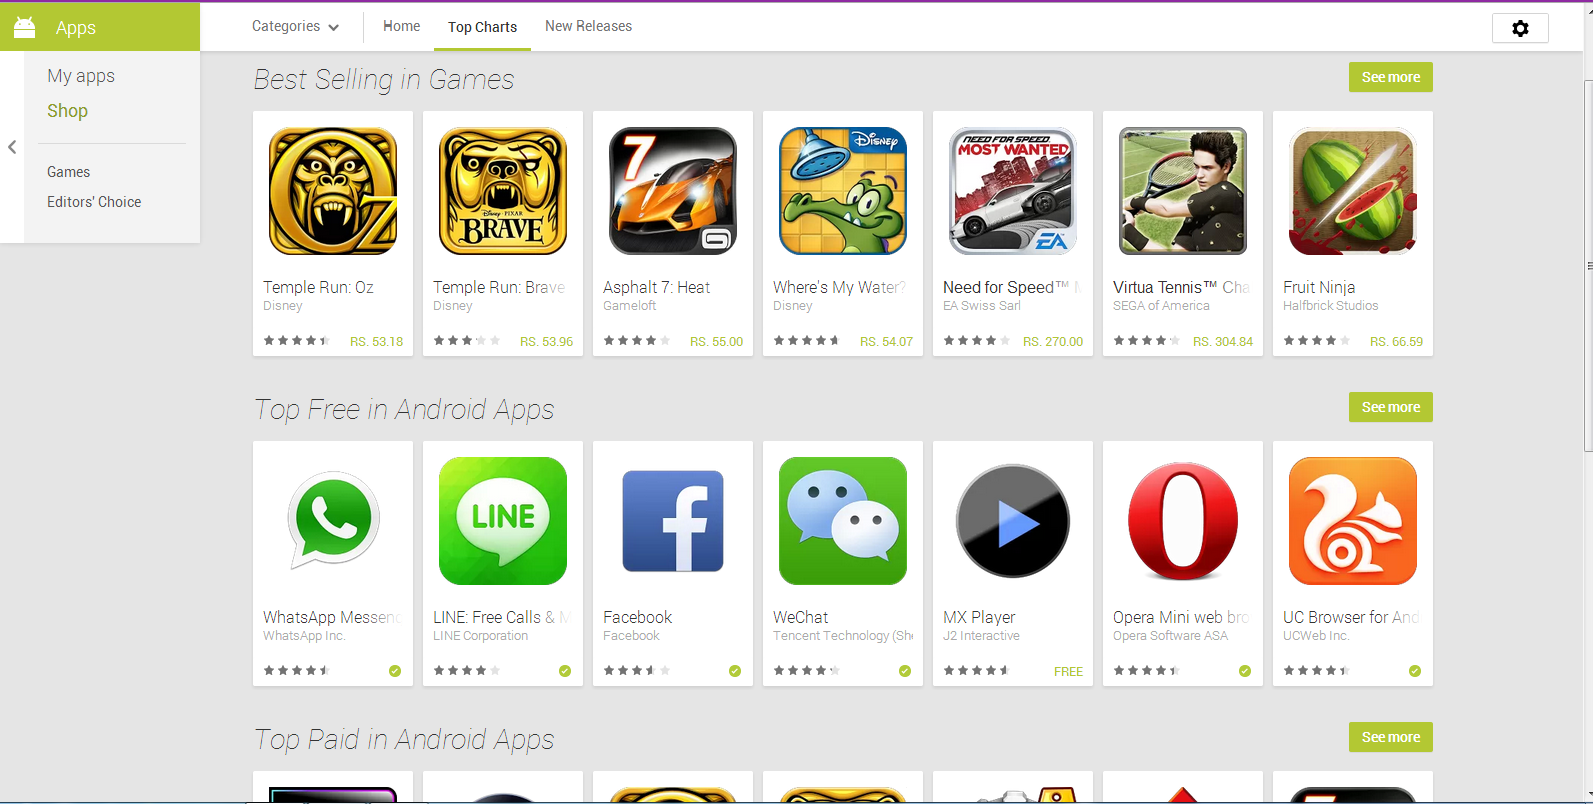 Google Revises Web Version Of Android App On Play Store